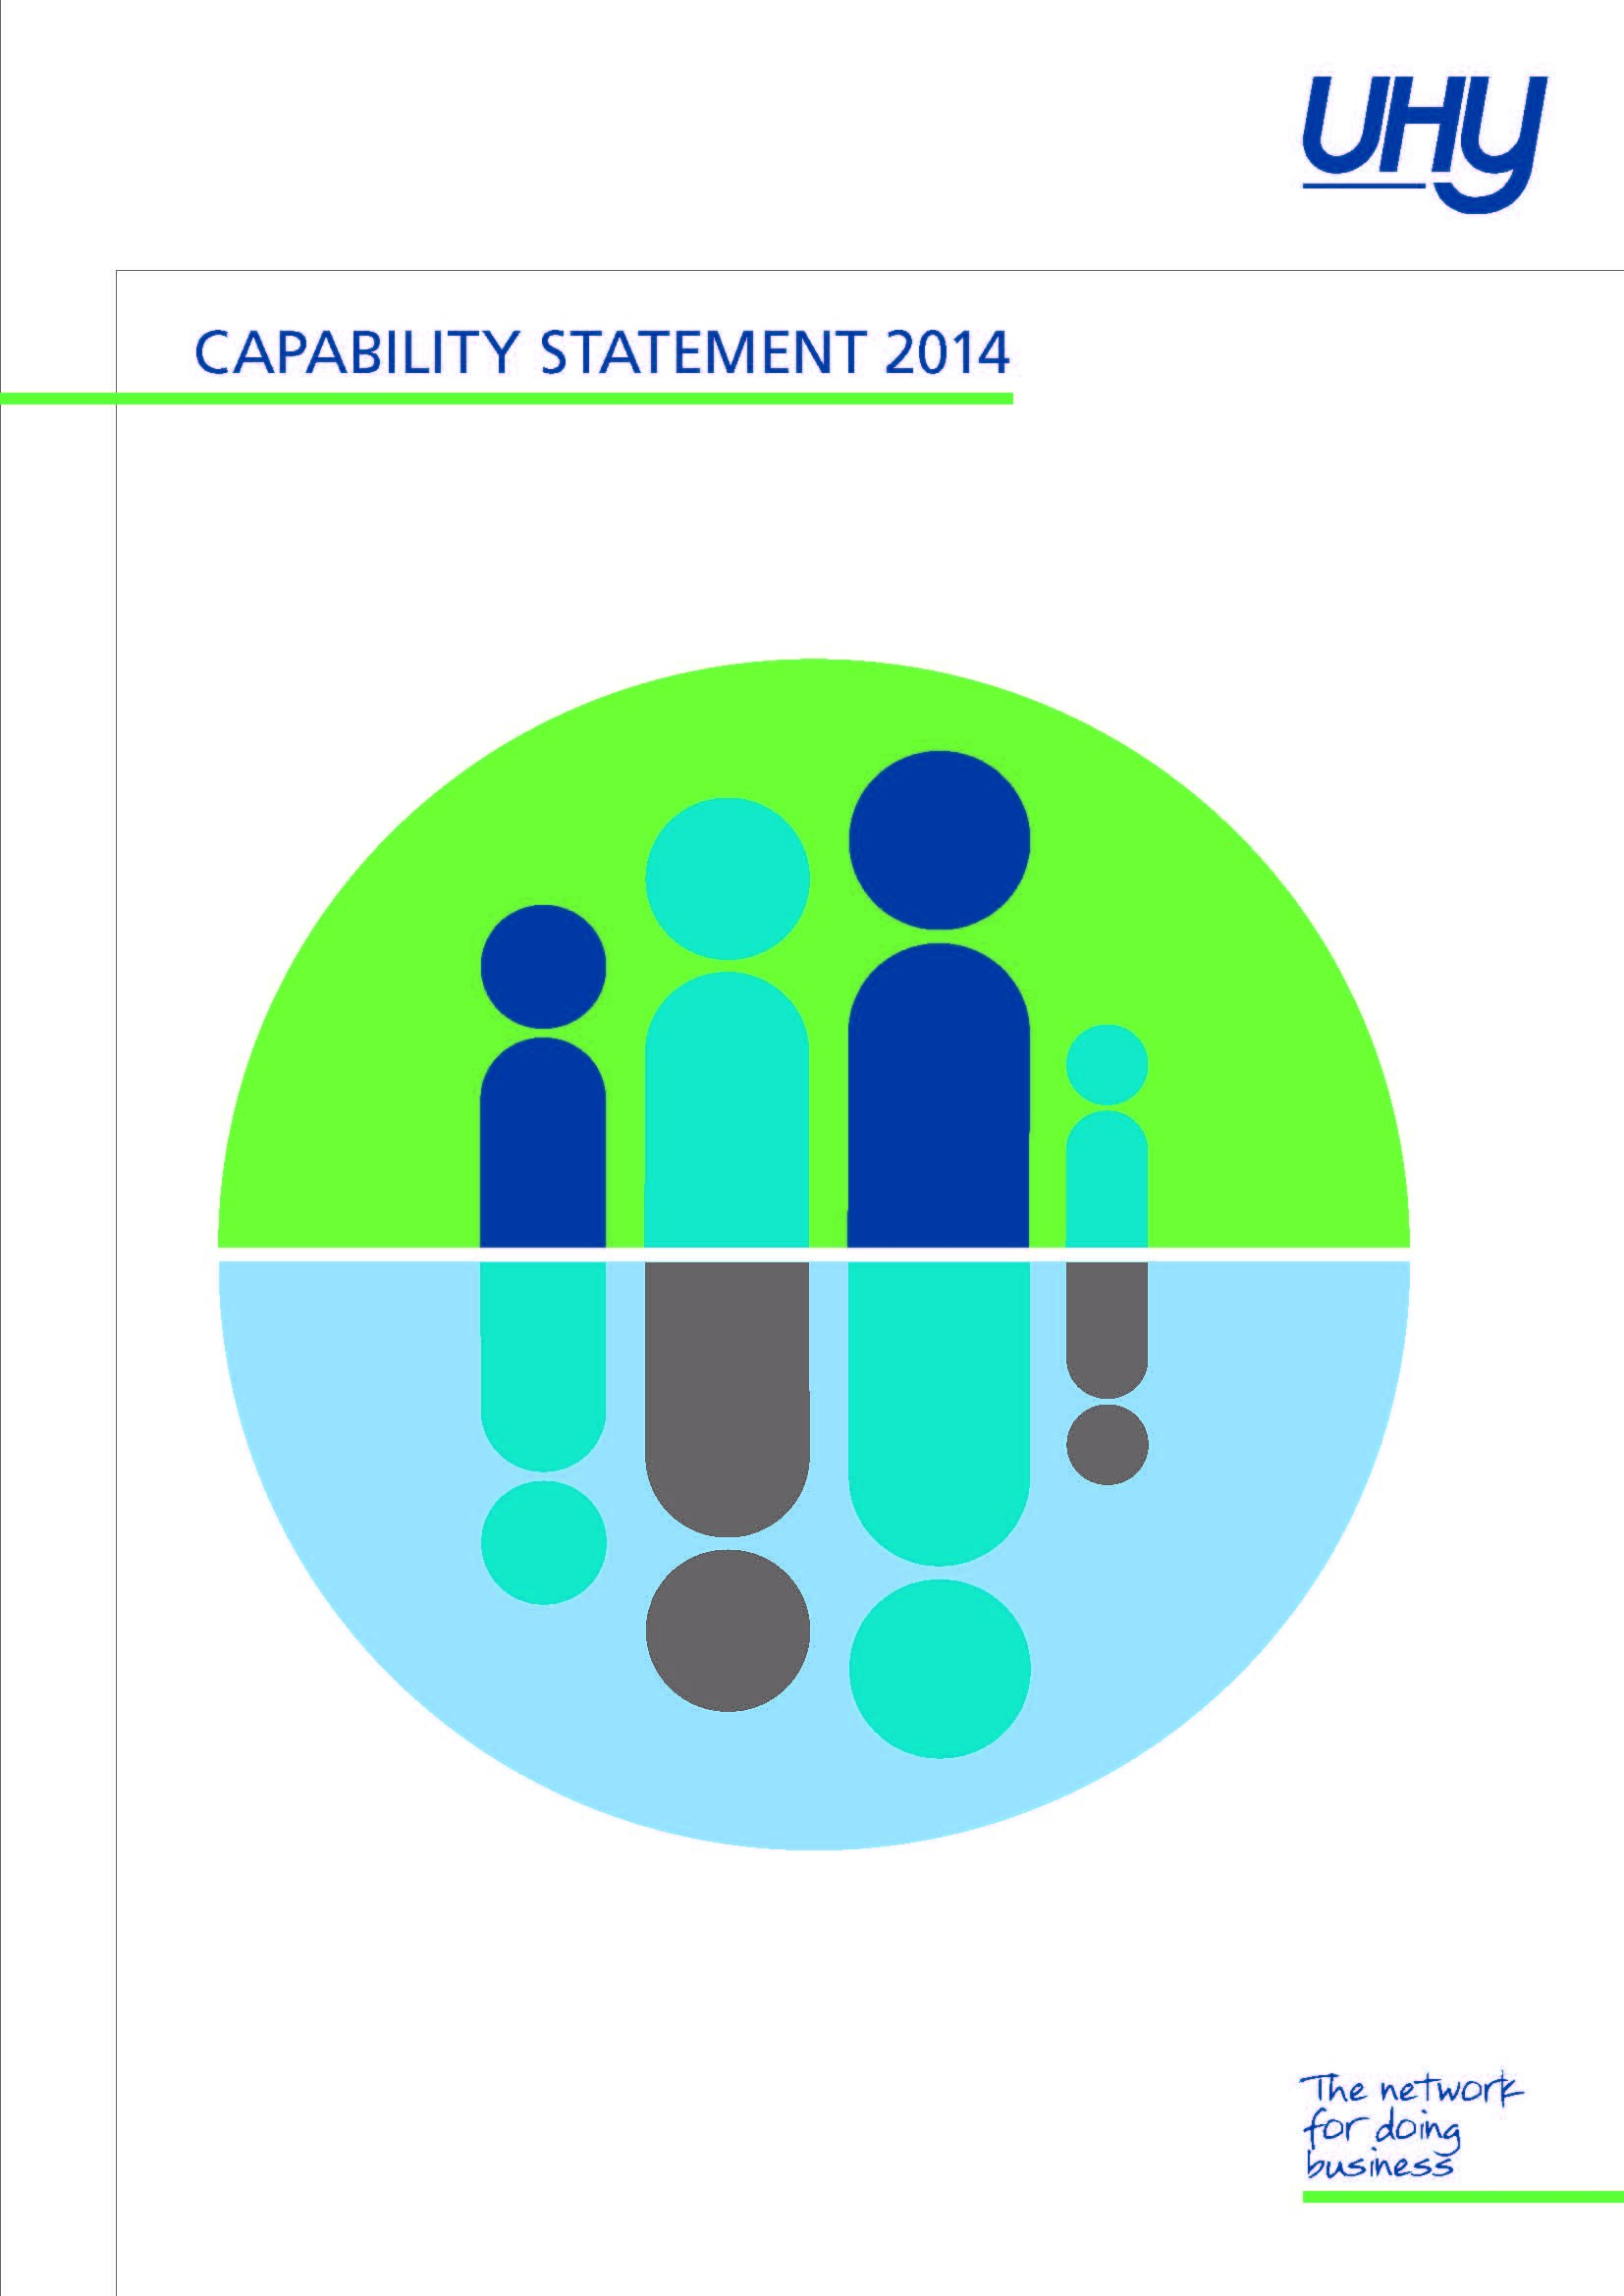 UHY Capability Statement 2014_p1